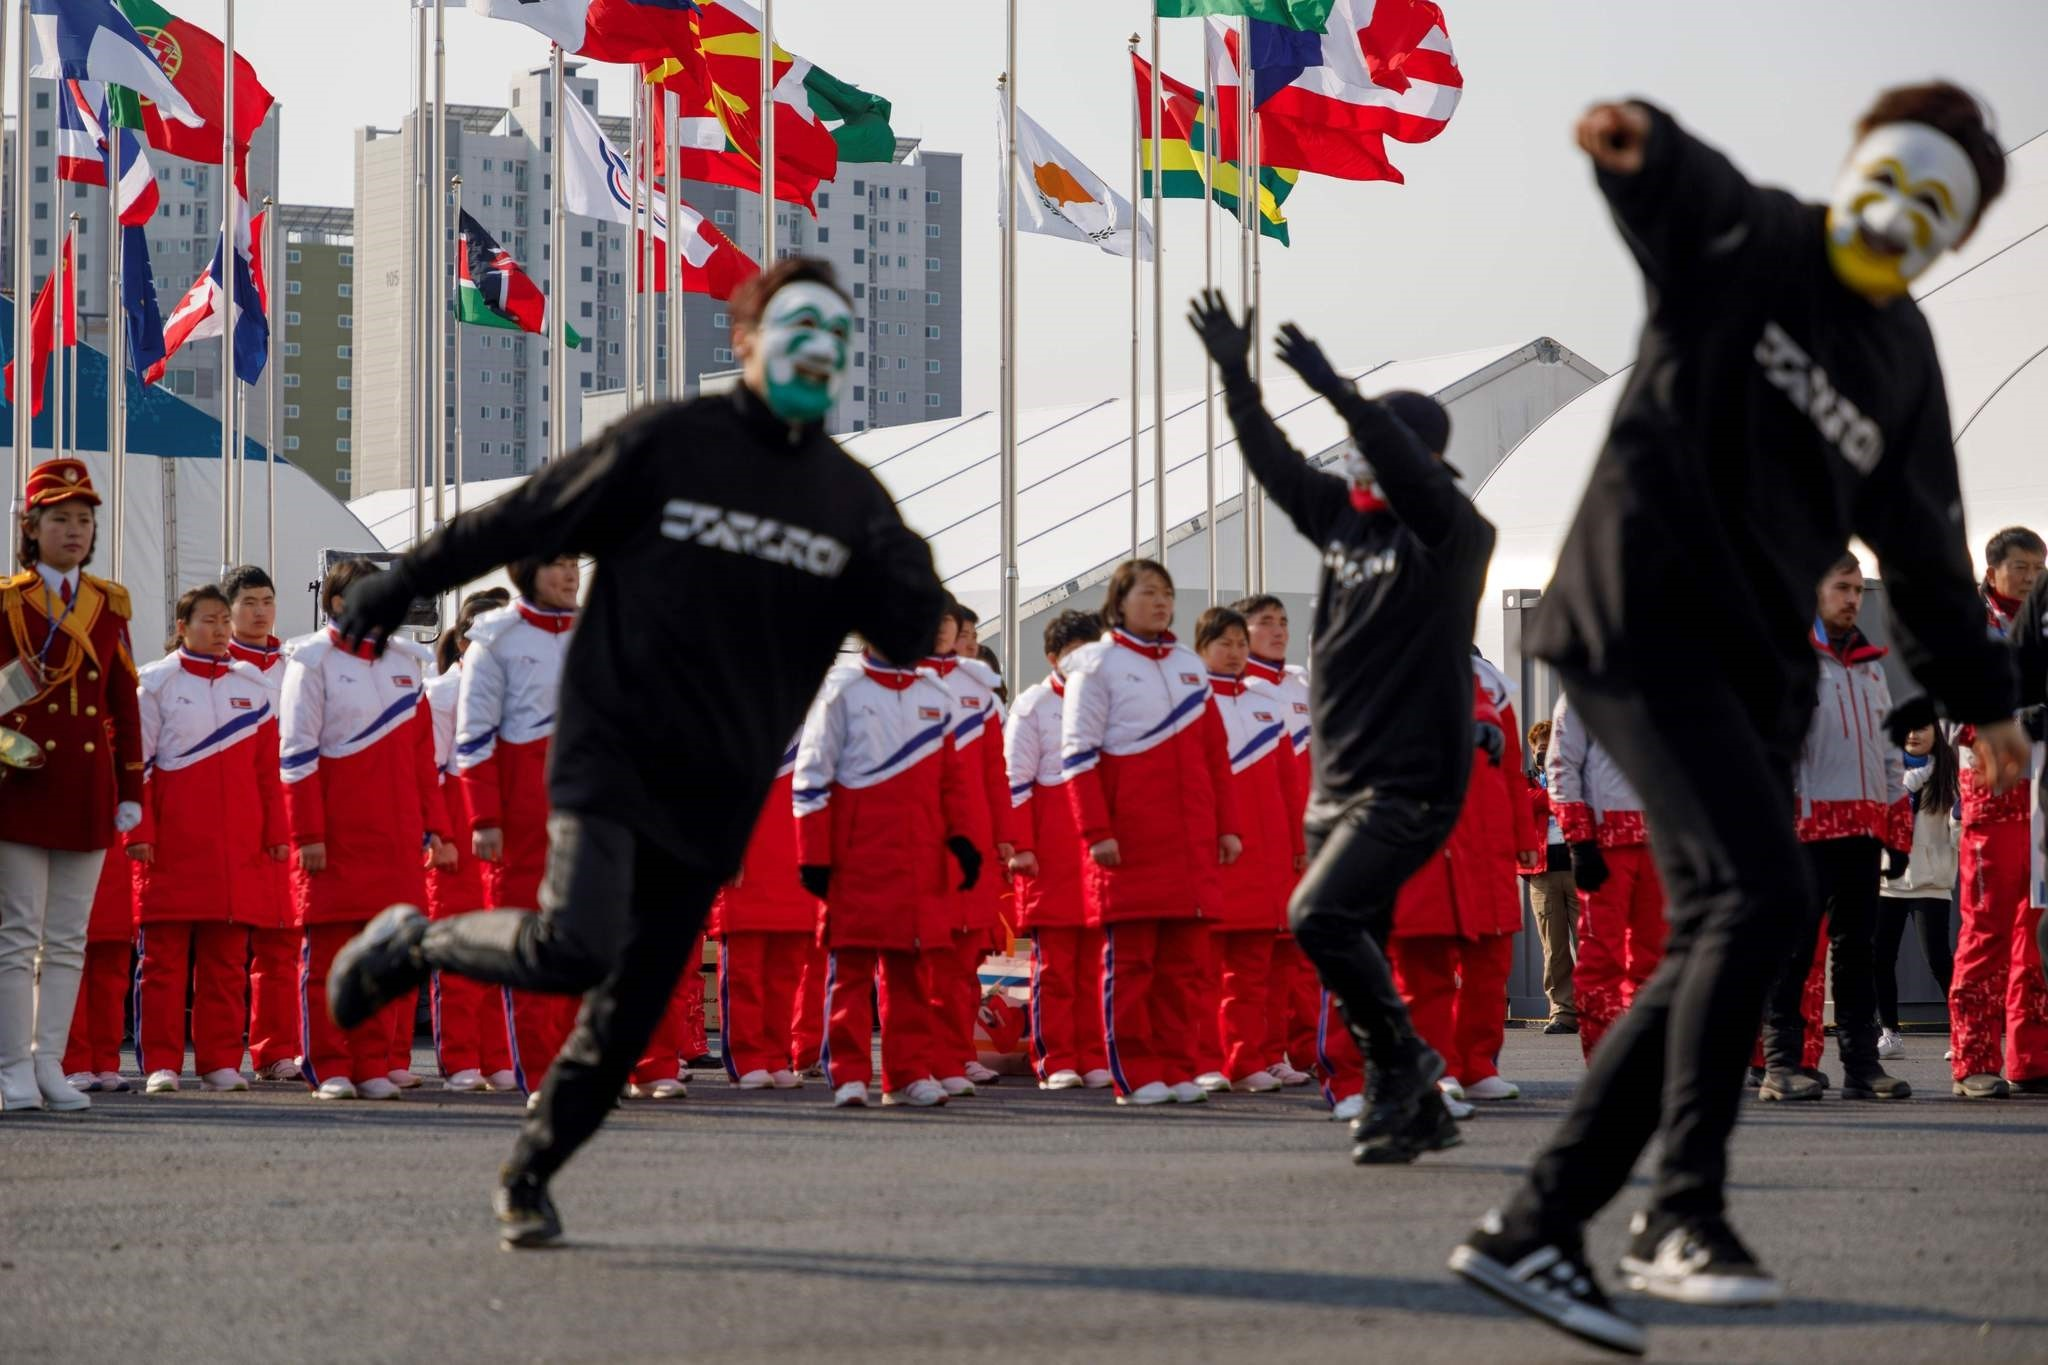 North Korea's athletes watch as South Korean B-Boys perform a dance routine at a welcoming ceremony at the athletes village ahead of the 2018 Pyeongchang winter Olympic games in Gangneung on February 8, 2018. (AFP PHOTO)